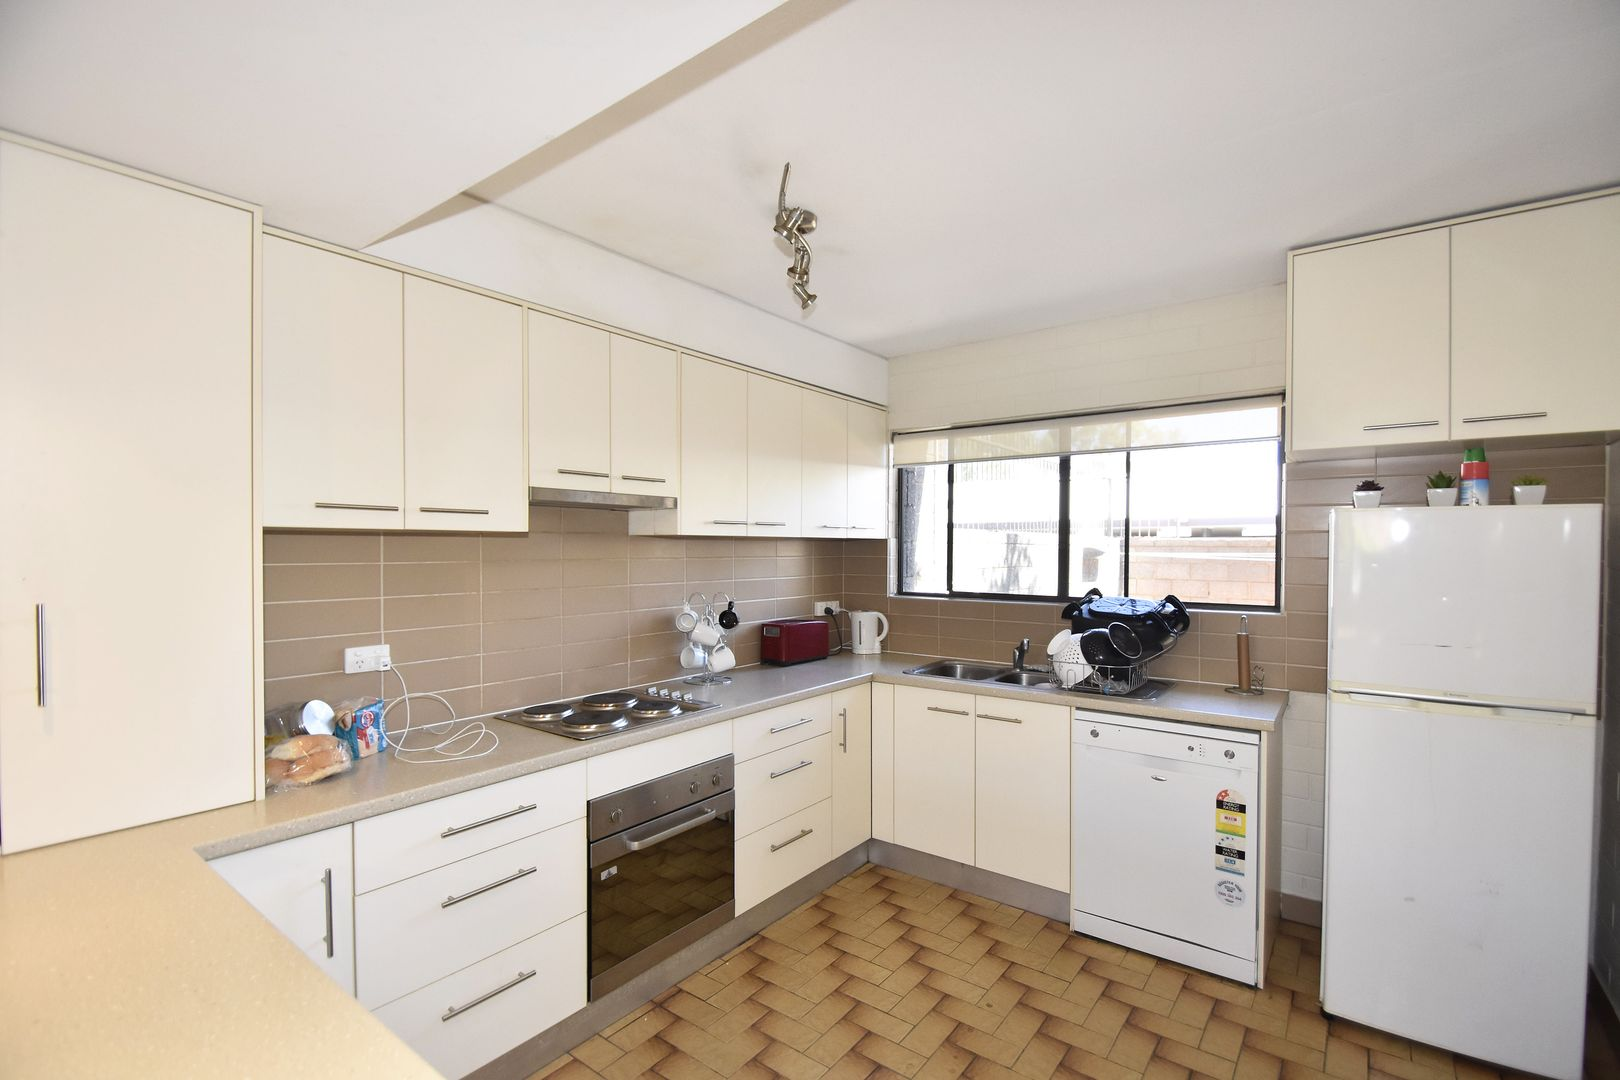 9 15 Leichhardt Terrace Alice Springs Nt 0870 Townhouse For Sale